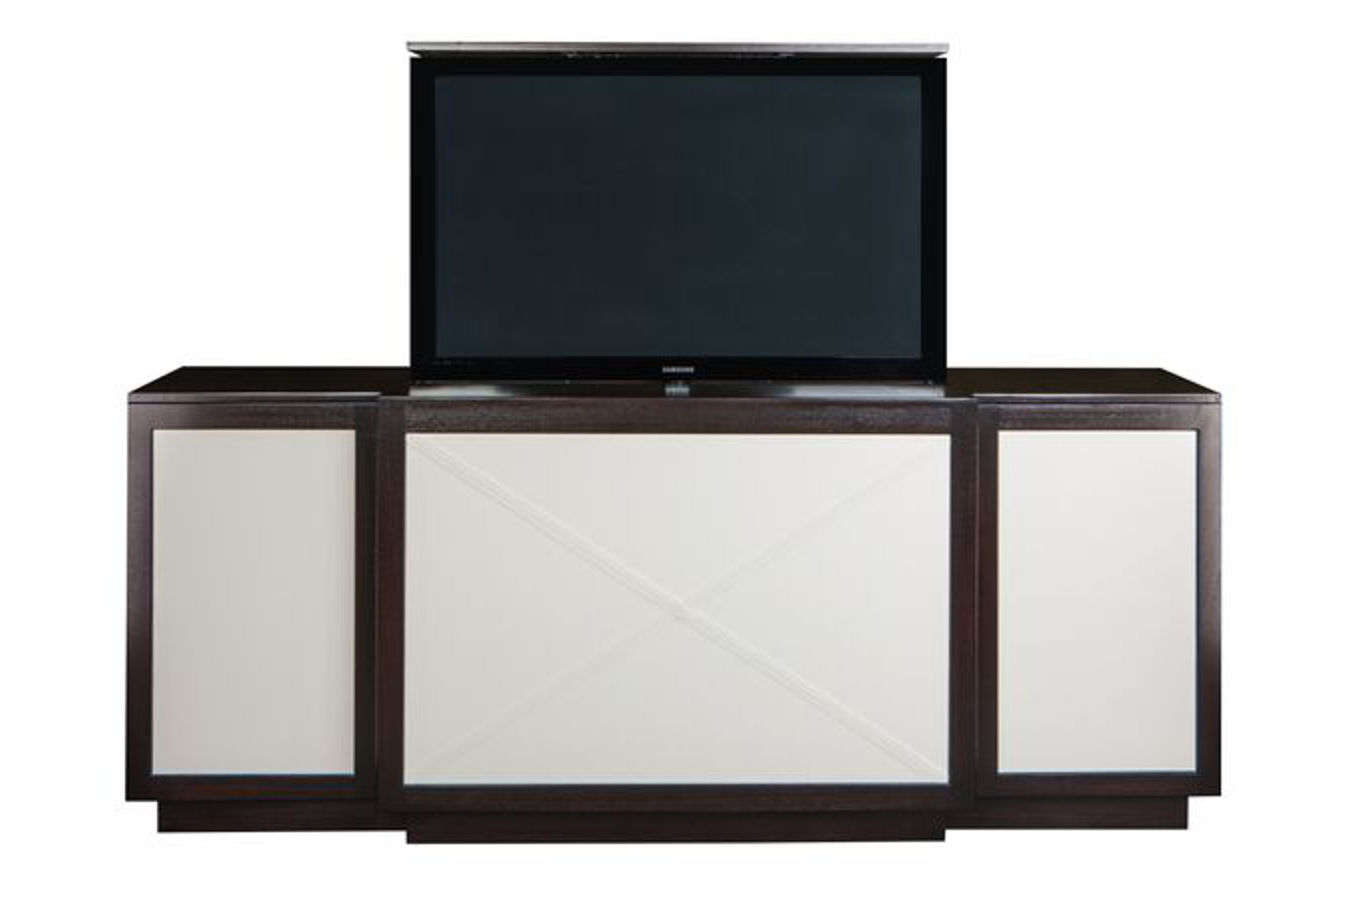 custom modern motorized tv lift cabinet. Black Bedroom Furniture Sets. Home Design Ideas